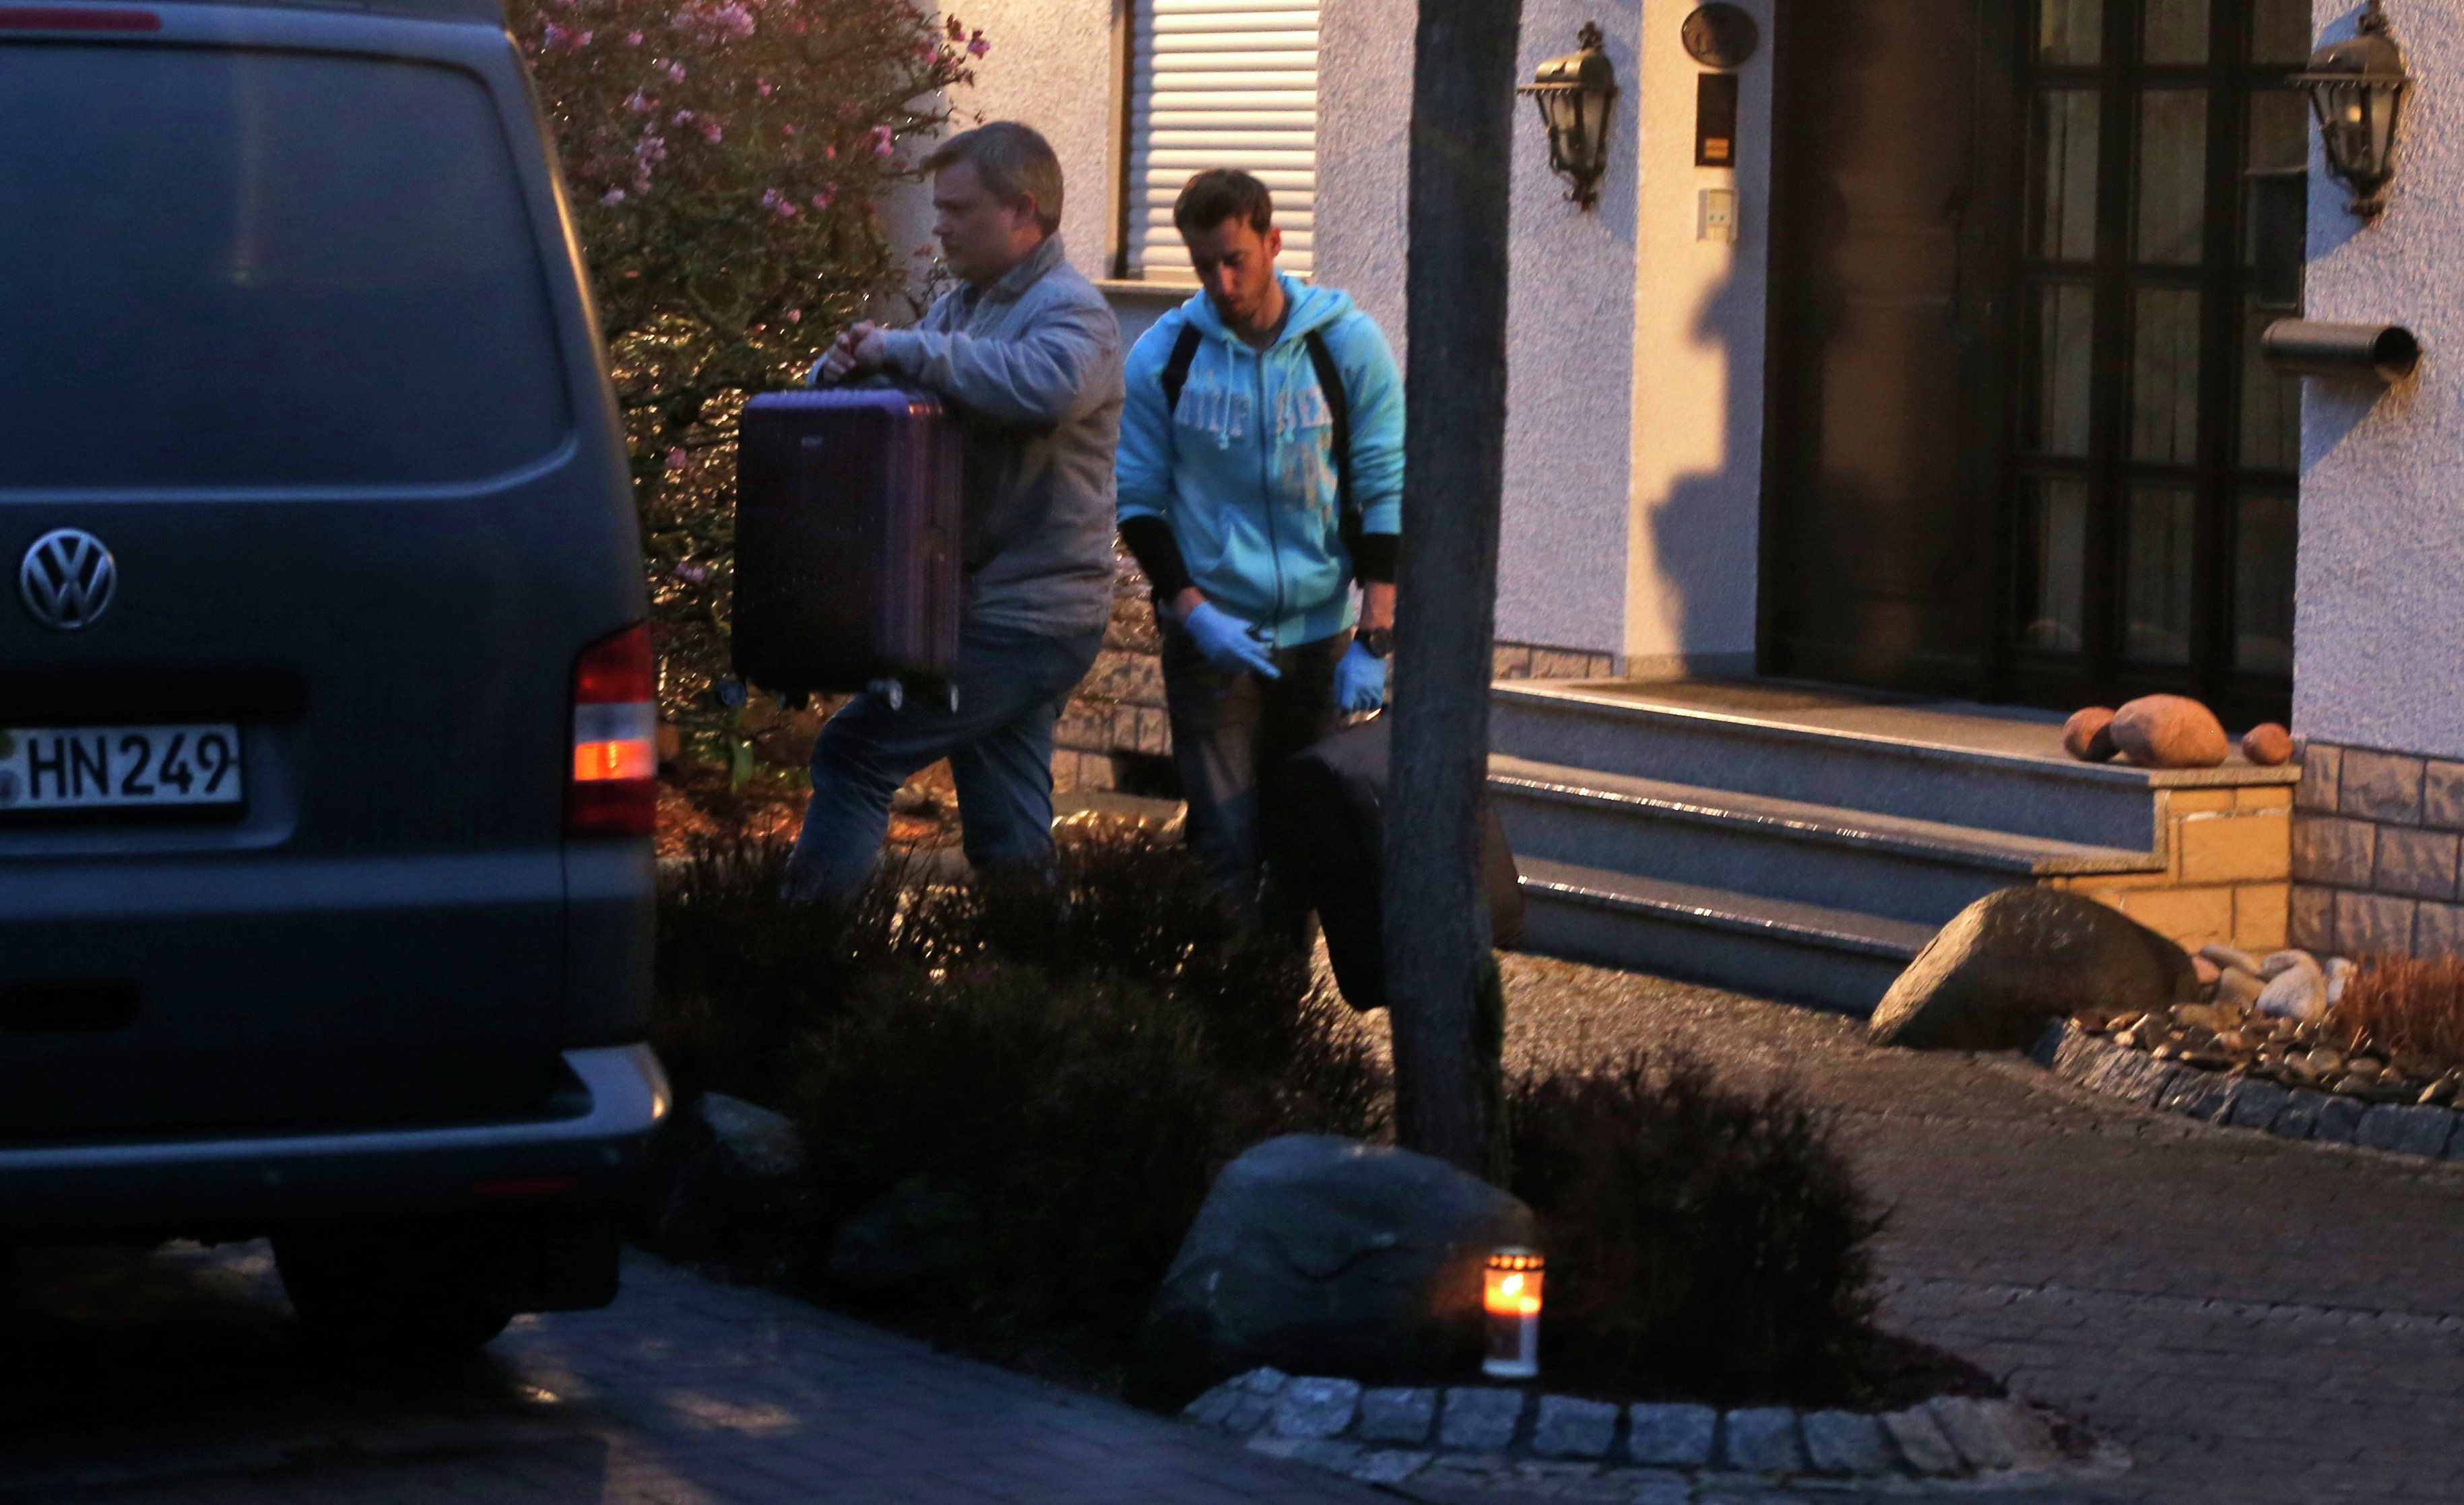 Investigators carry a suitcase out of the home of the family of Andreas Lubitz in Montabaur, Germany